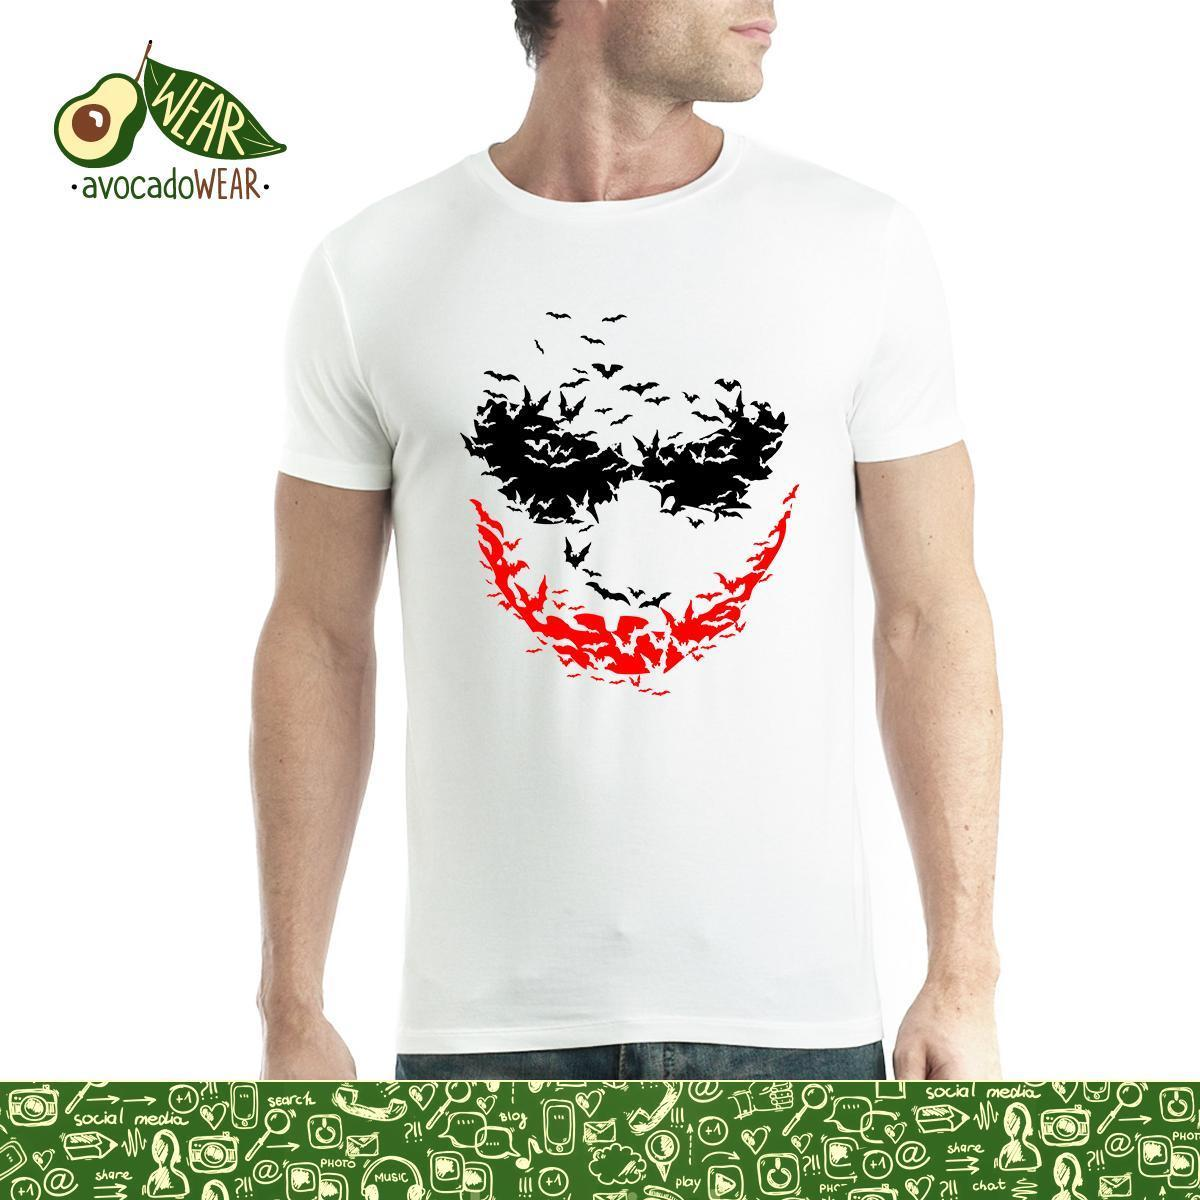 Psycho Smile Bats Mens T shirt S 3XLNew T Shirts Funny Tops Tee New Unisex High Quality Casual Printing 100 Cotton in T Shirts from Men 39 s Clothing